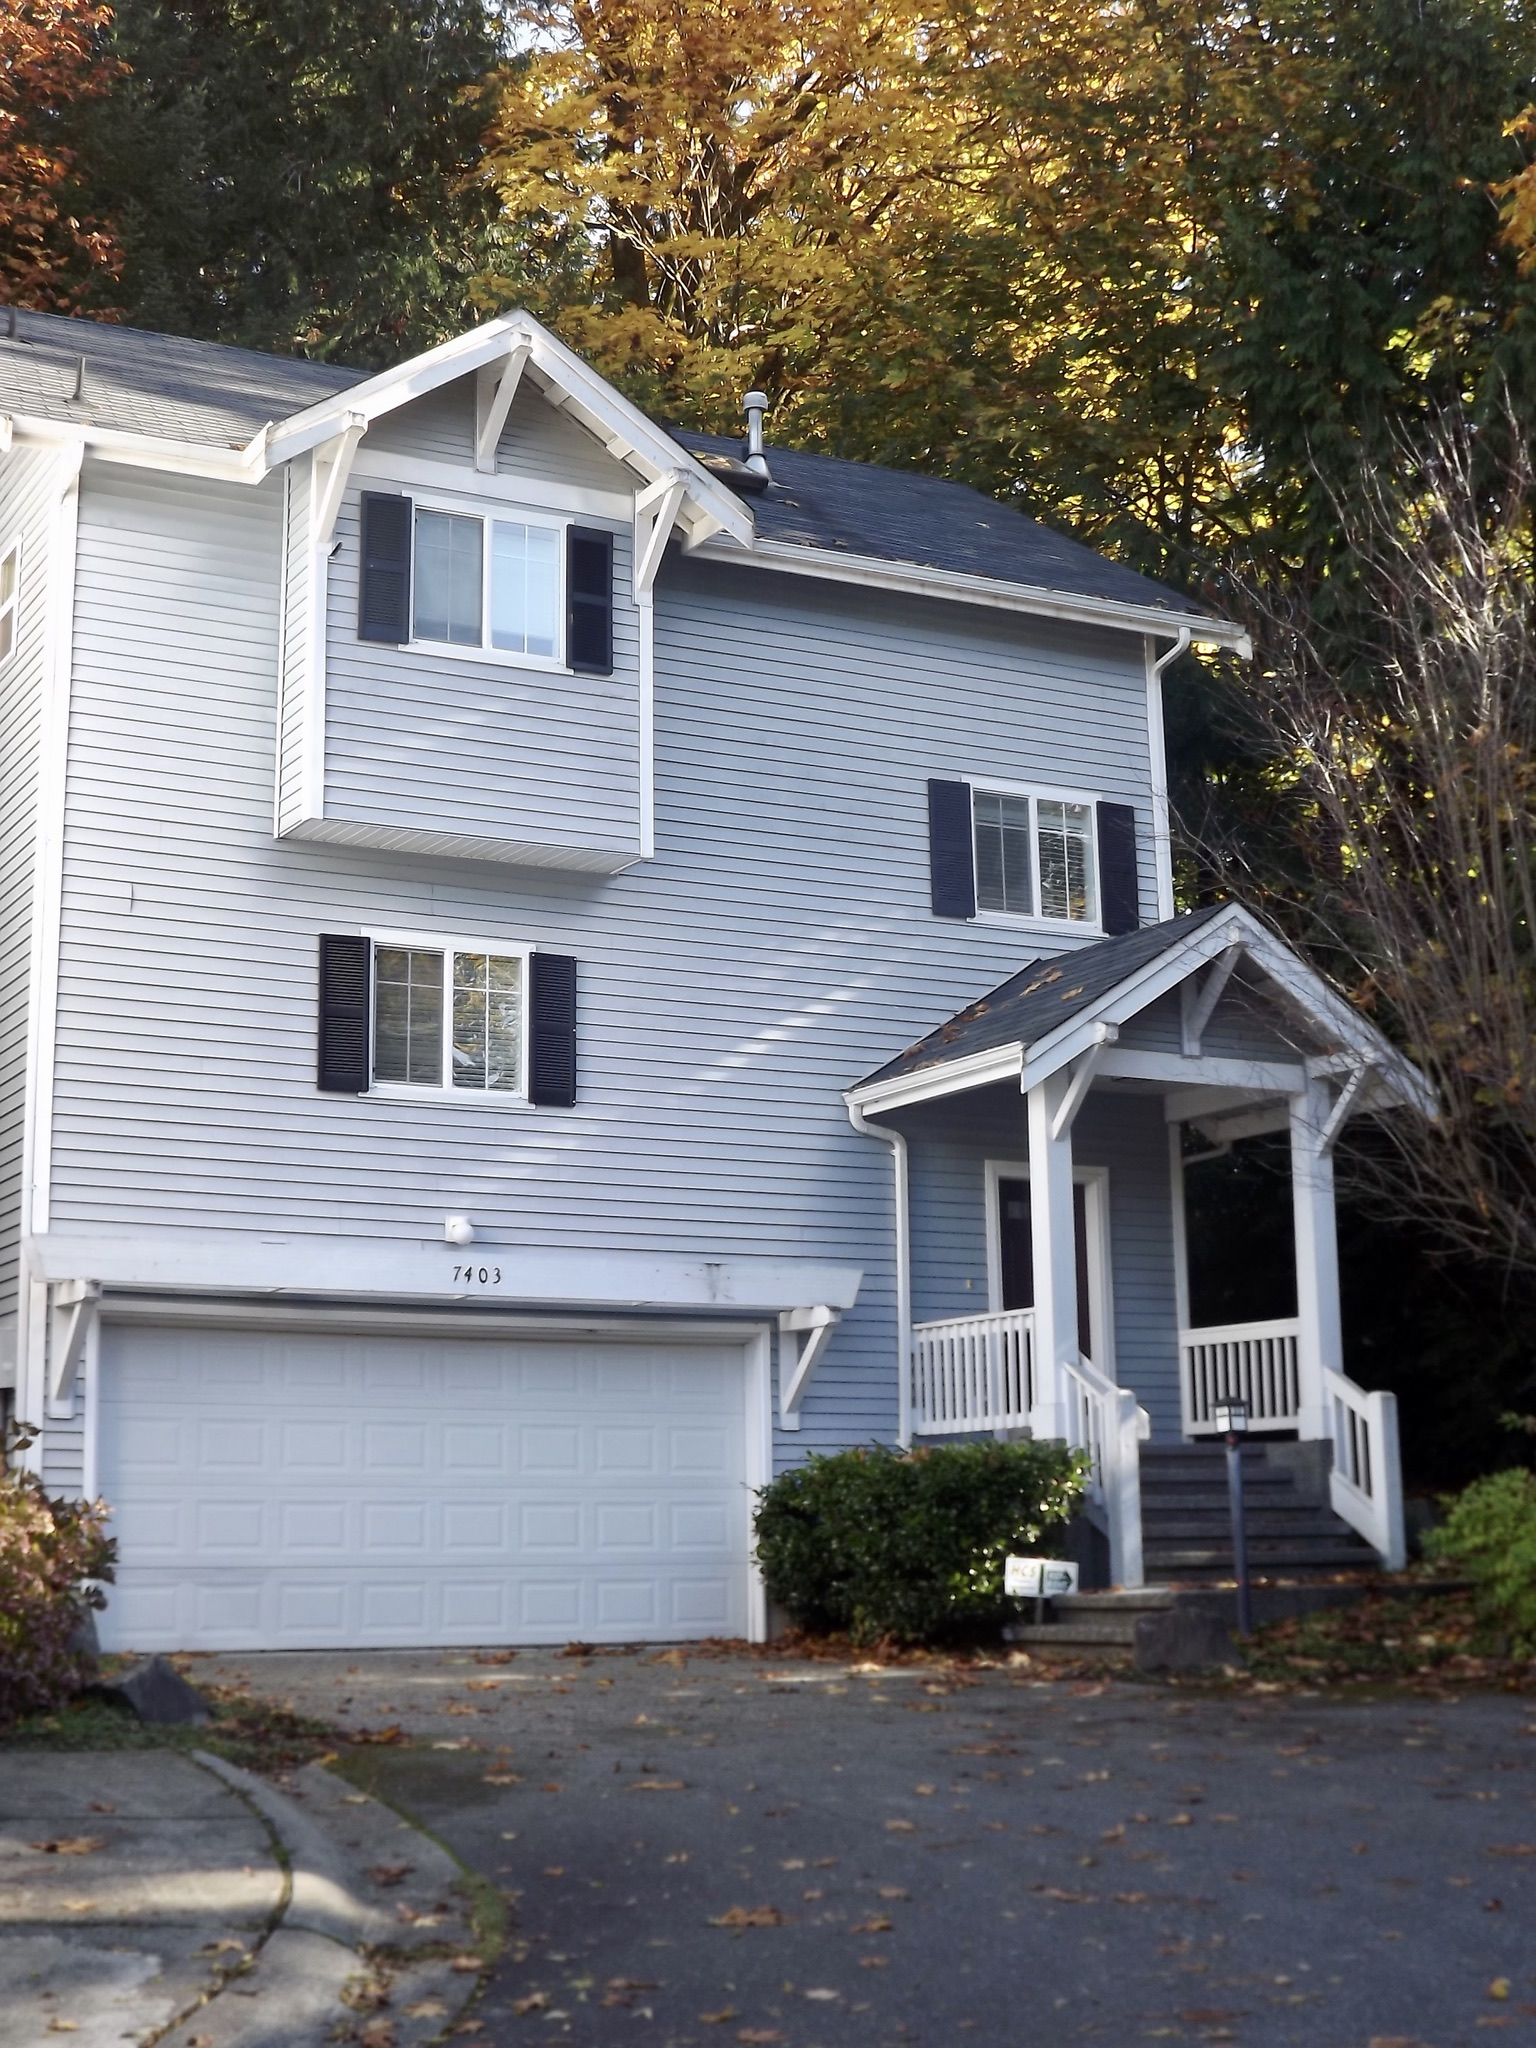 Primary Listing Image for MLS#: 10007521